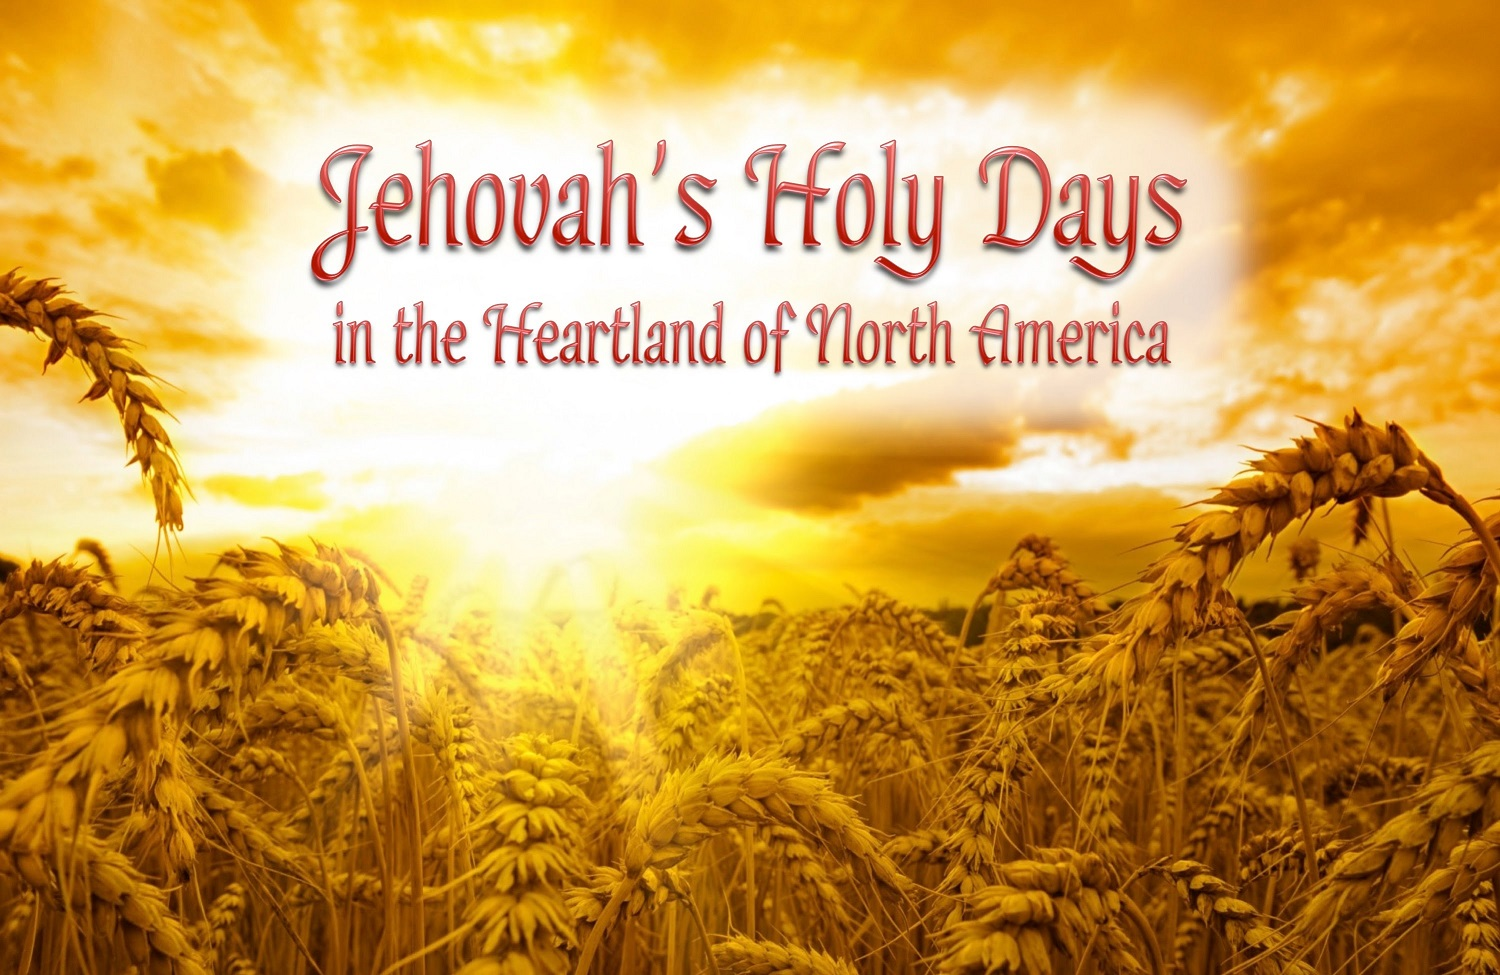 Jehovahs Holy Days in the Heartland Book of Mormon Evidence 1500x975